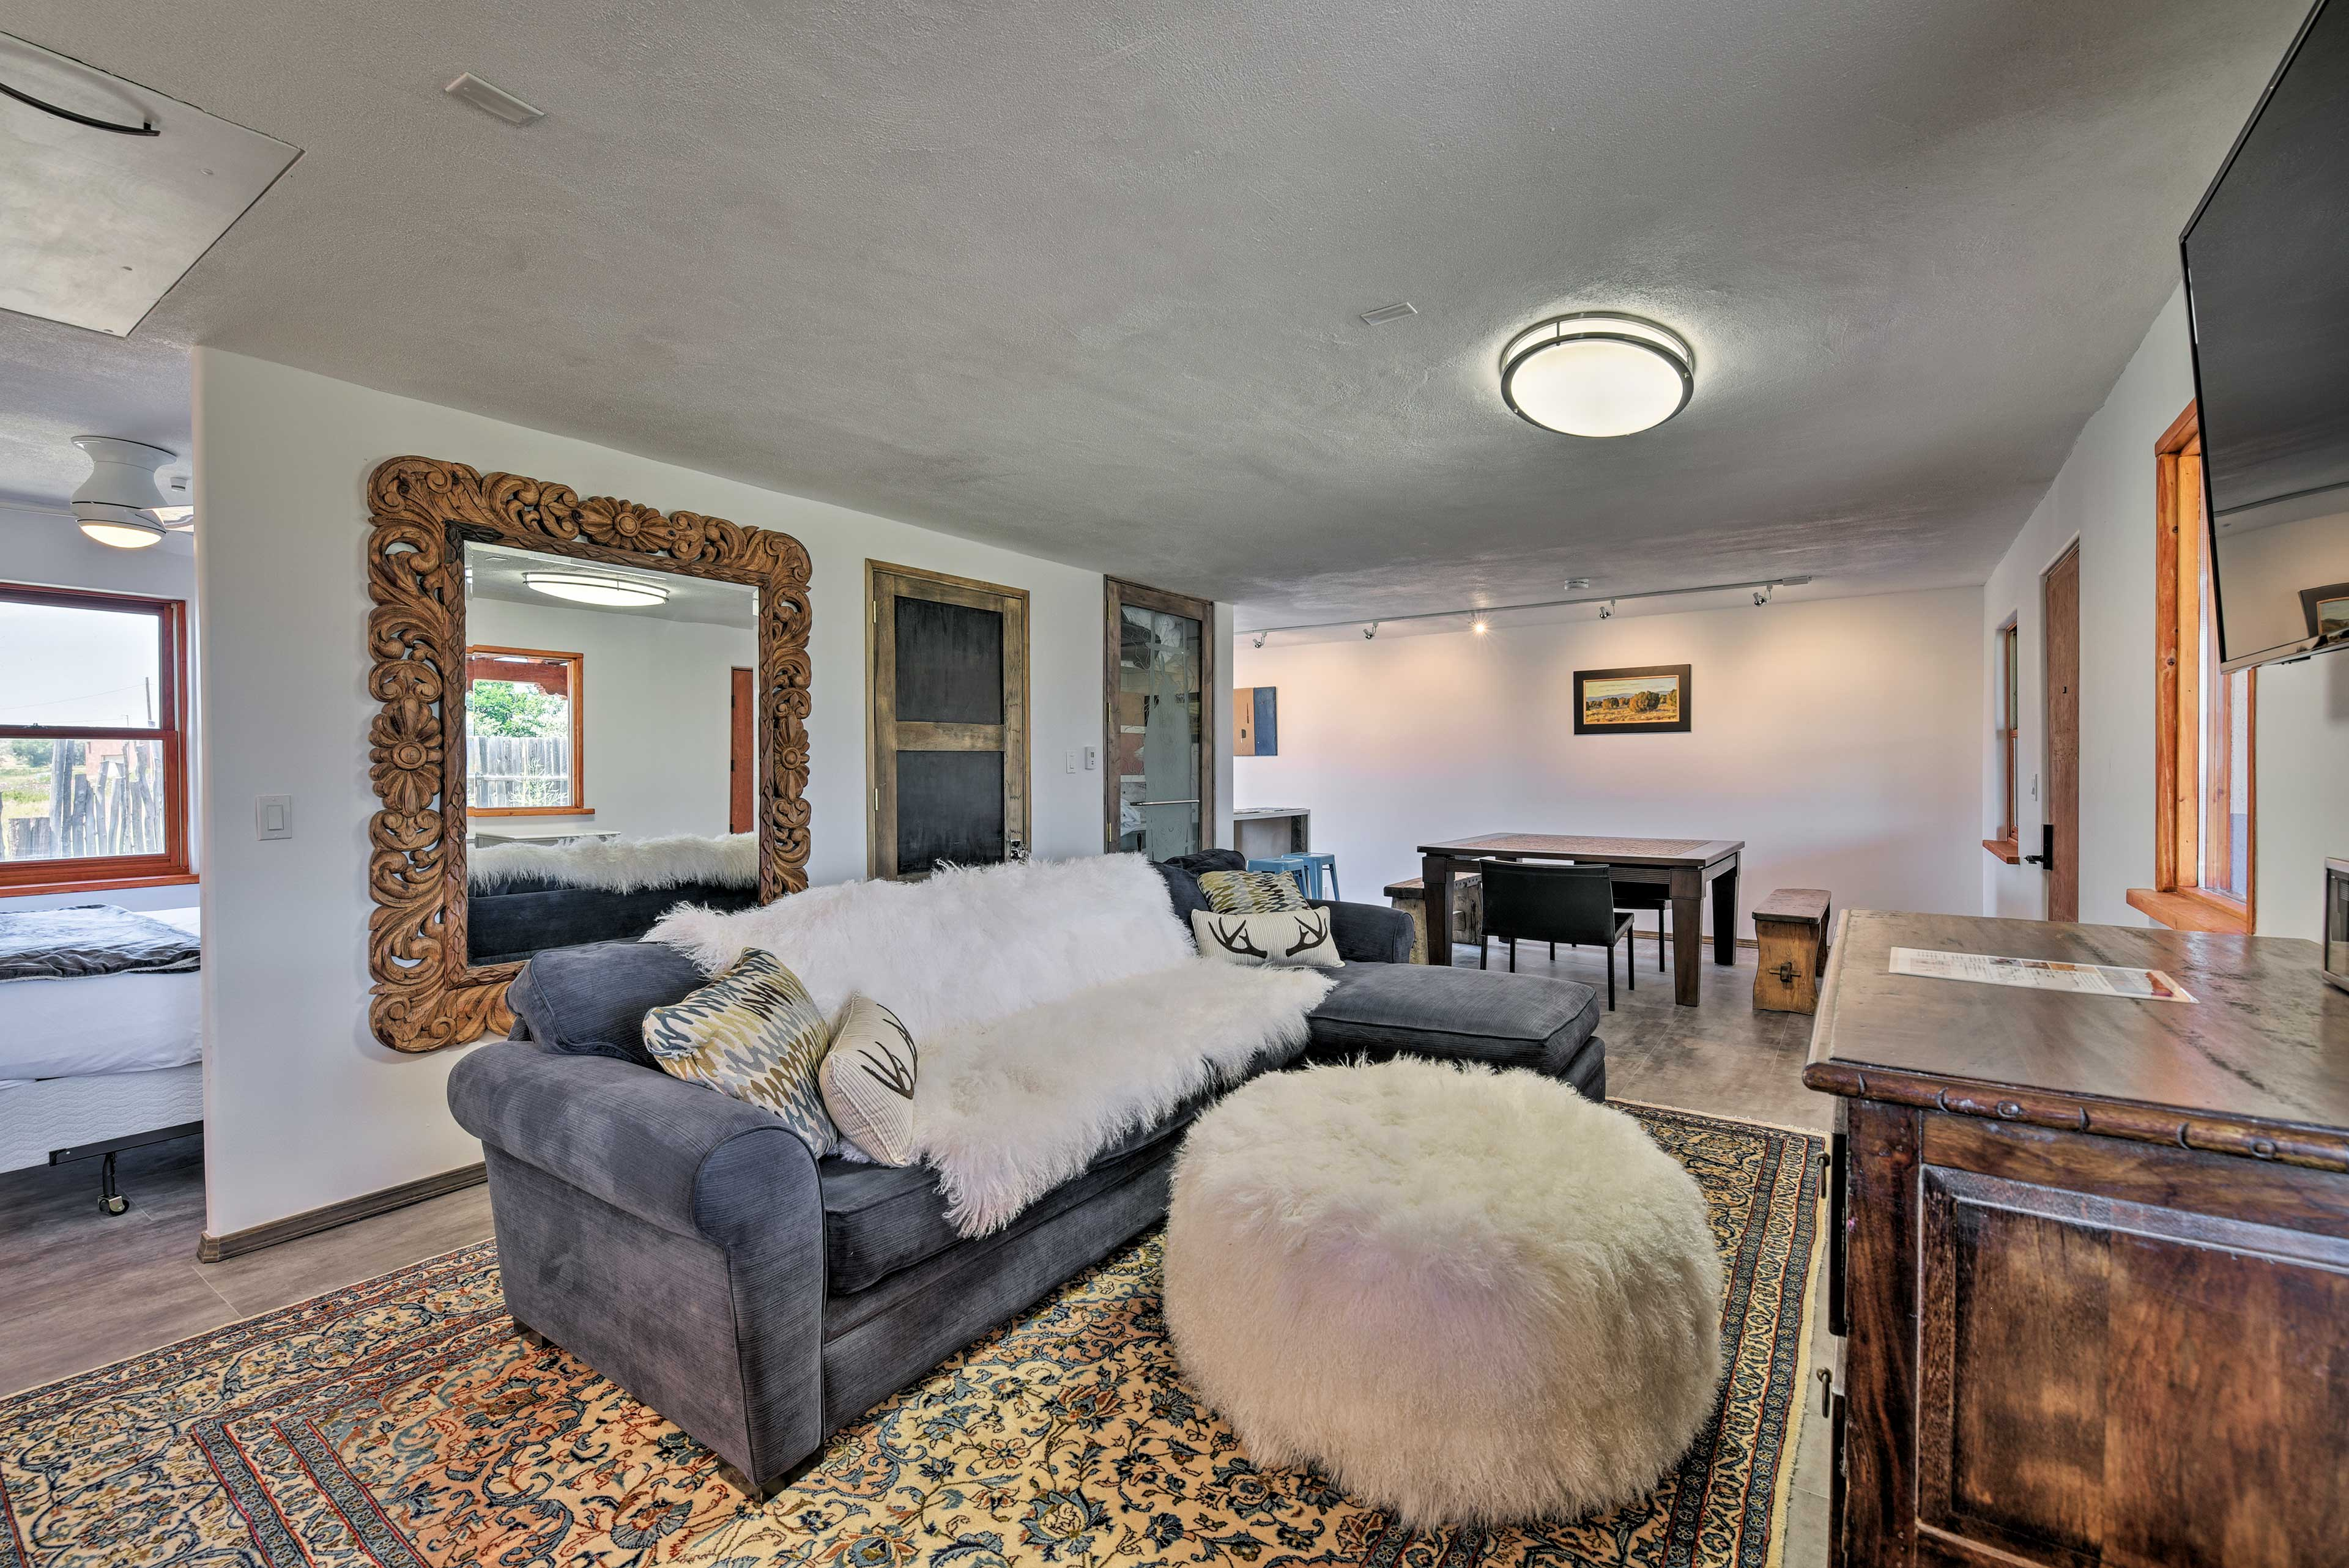 This home combines local charm with modern amenities.